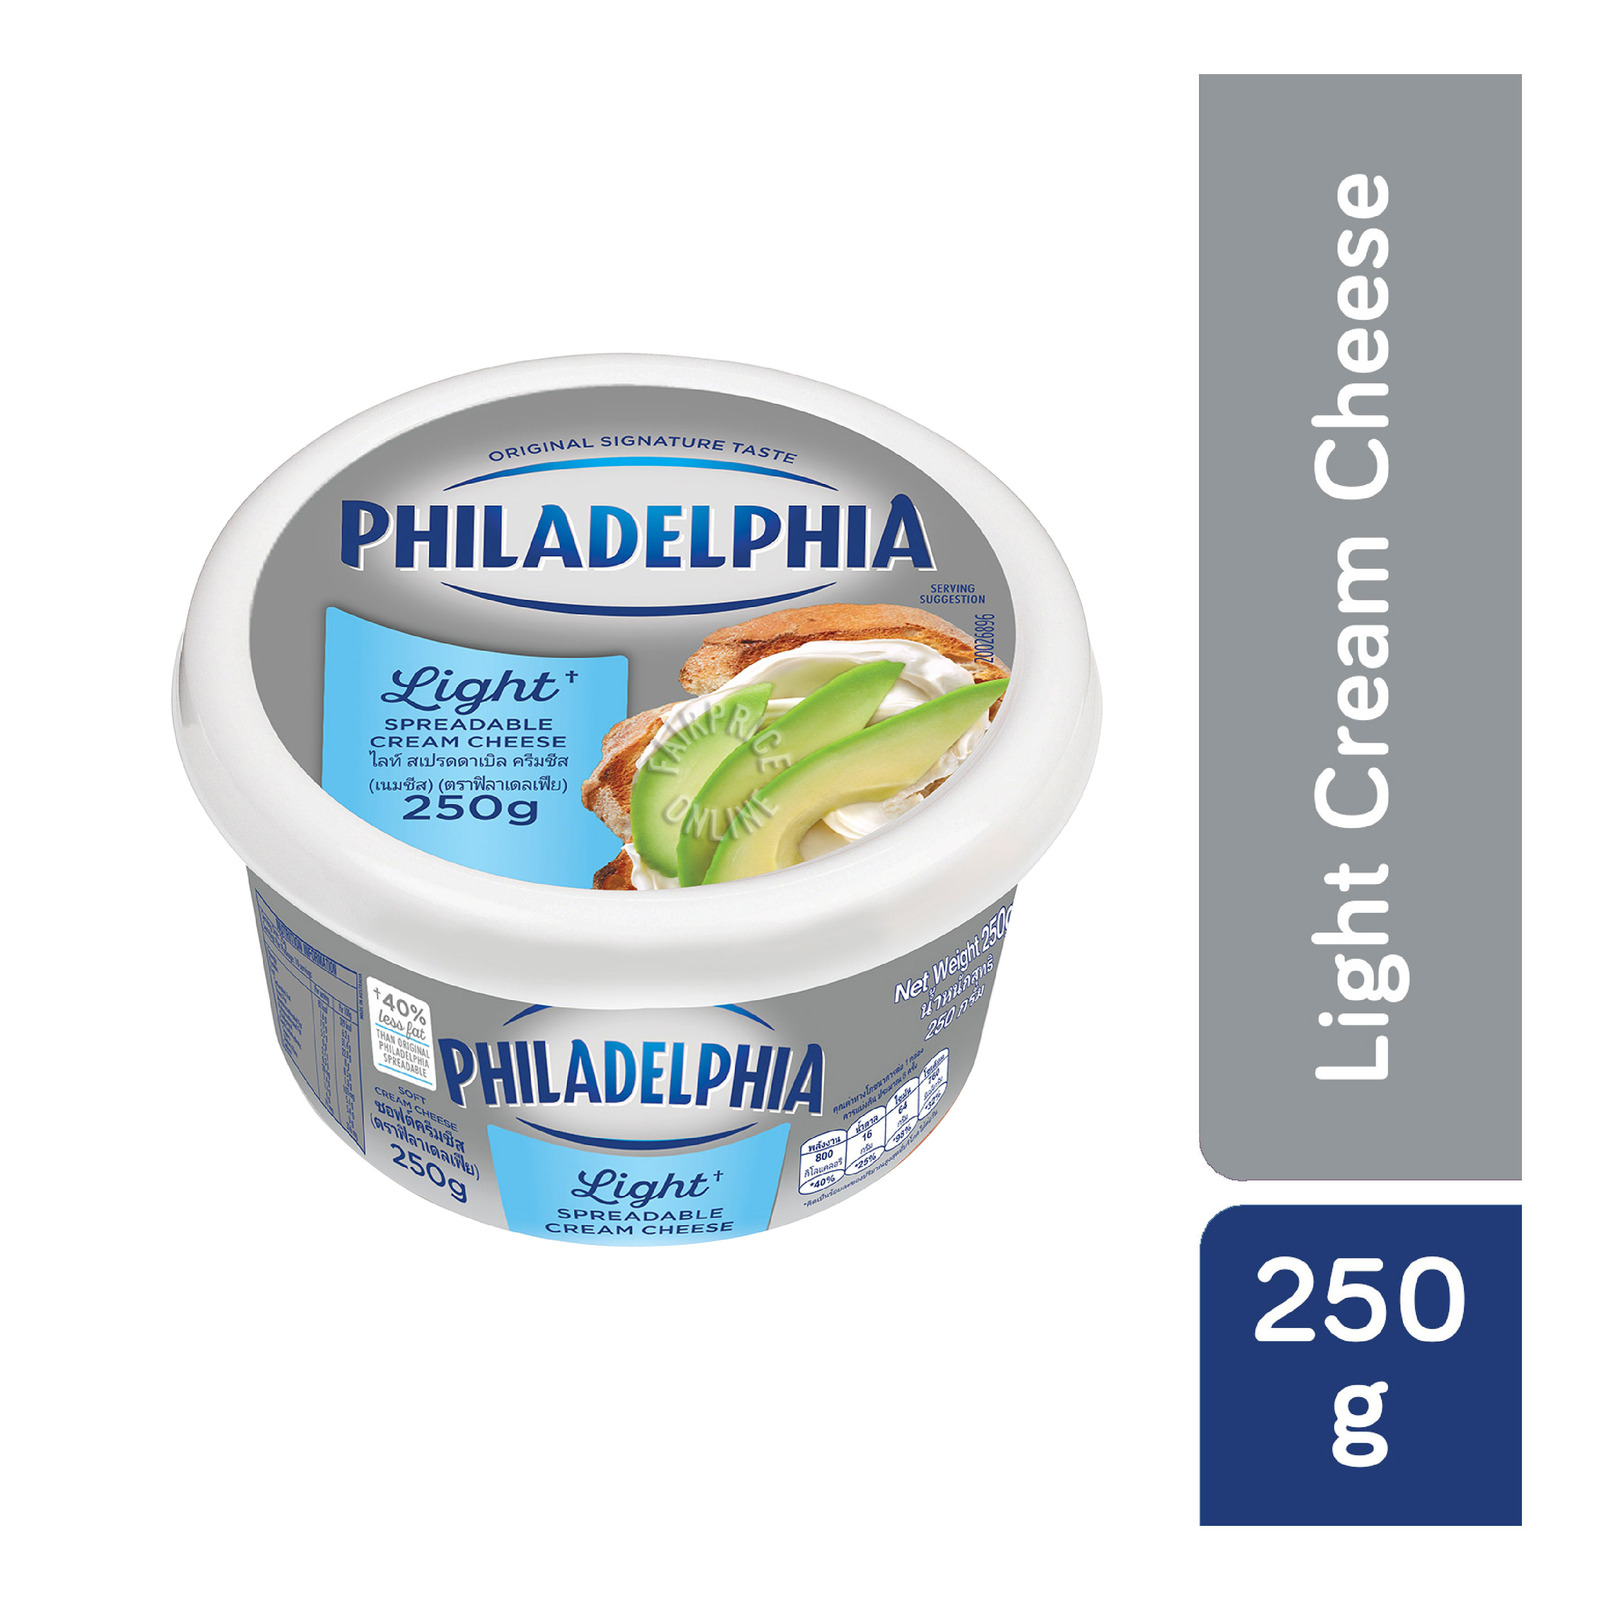 Kraft Philadelphia Cream Cheese - Light (40% Less Fat)